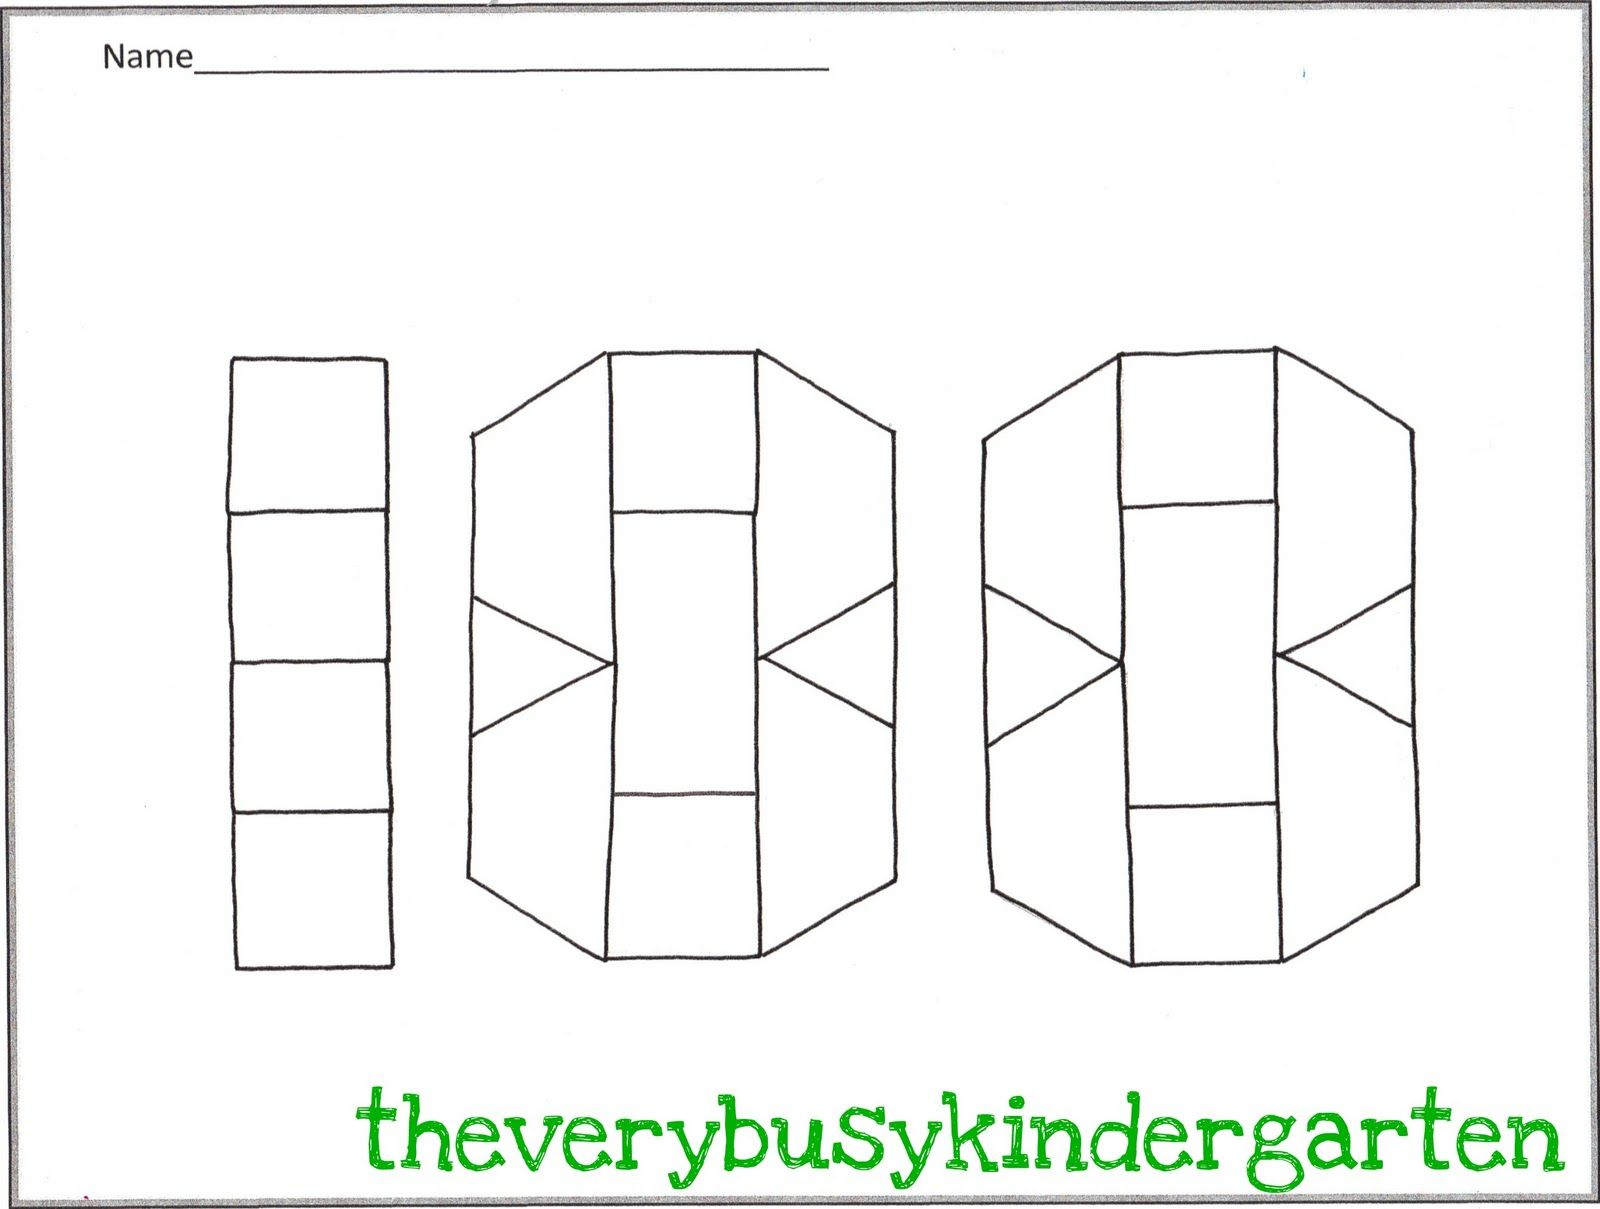 100 Day The Very Busy Kindergarten February Math